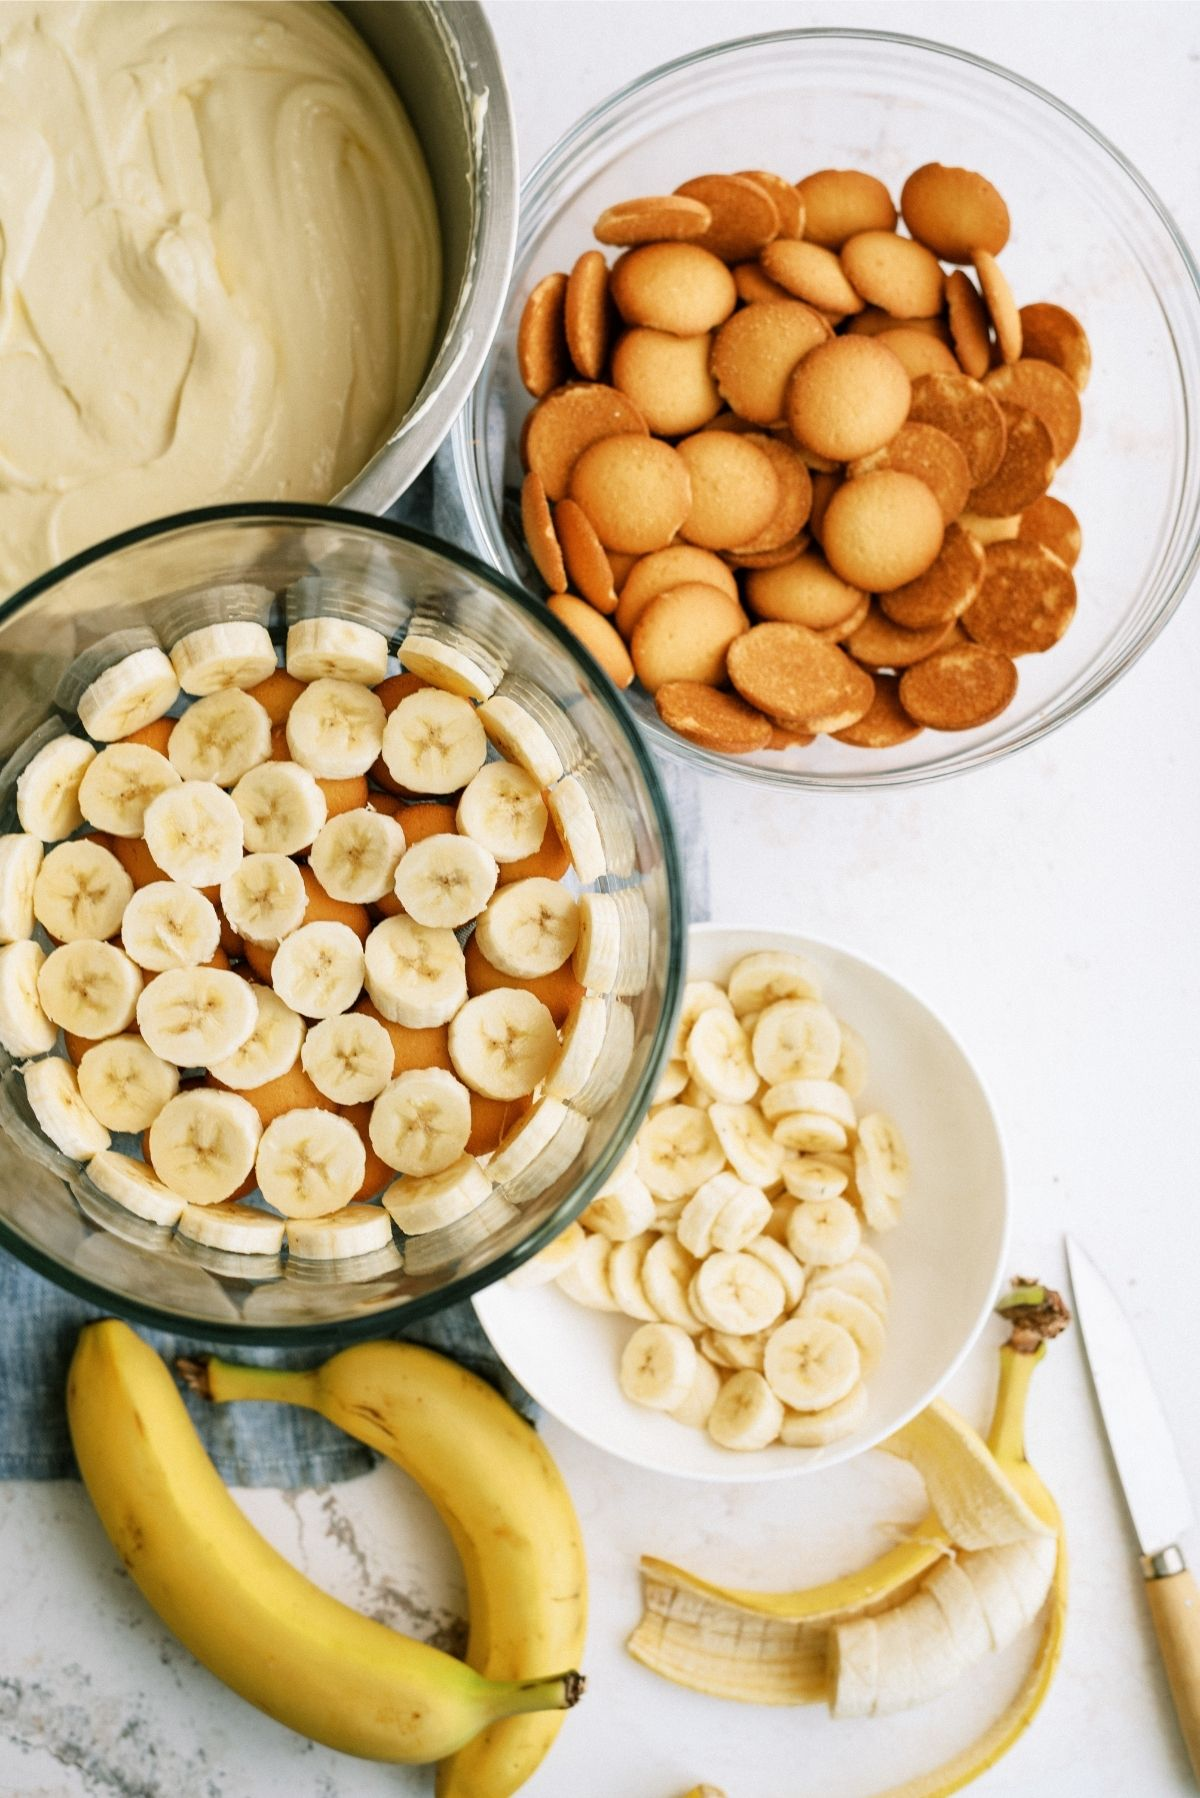 Layer Bananas on top of nilla wafers in trifle dish